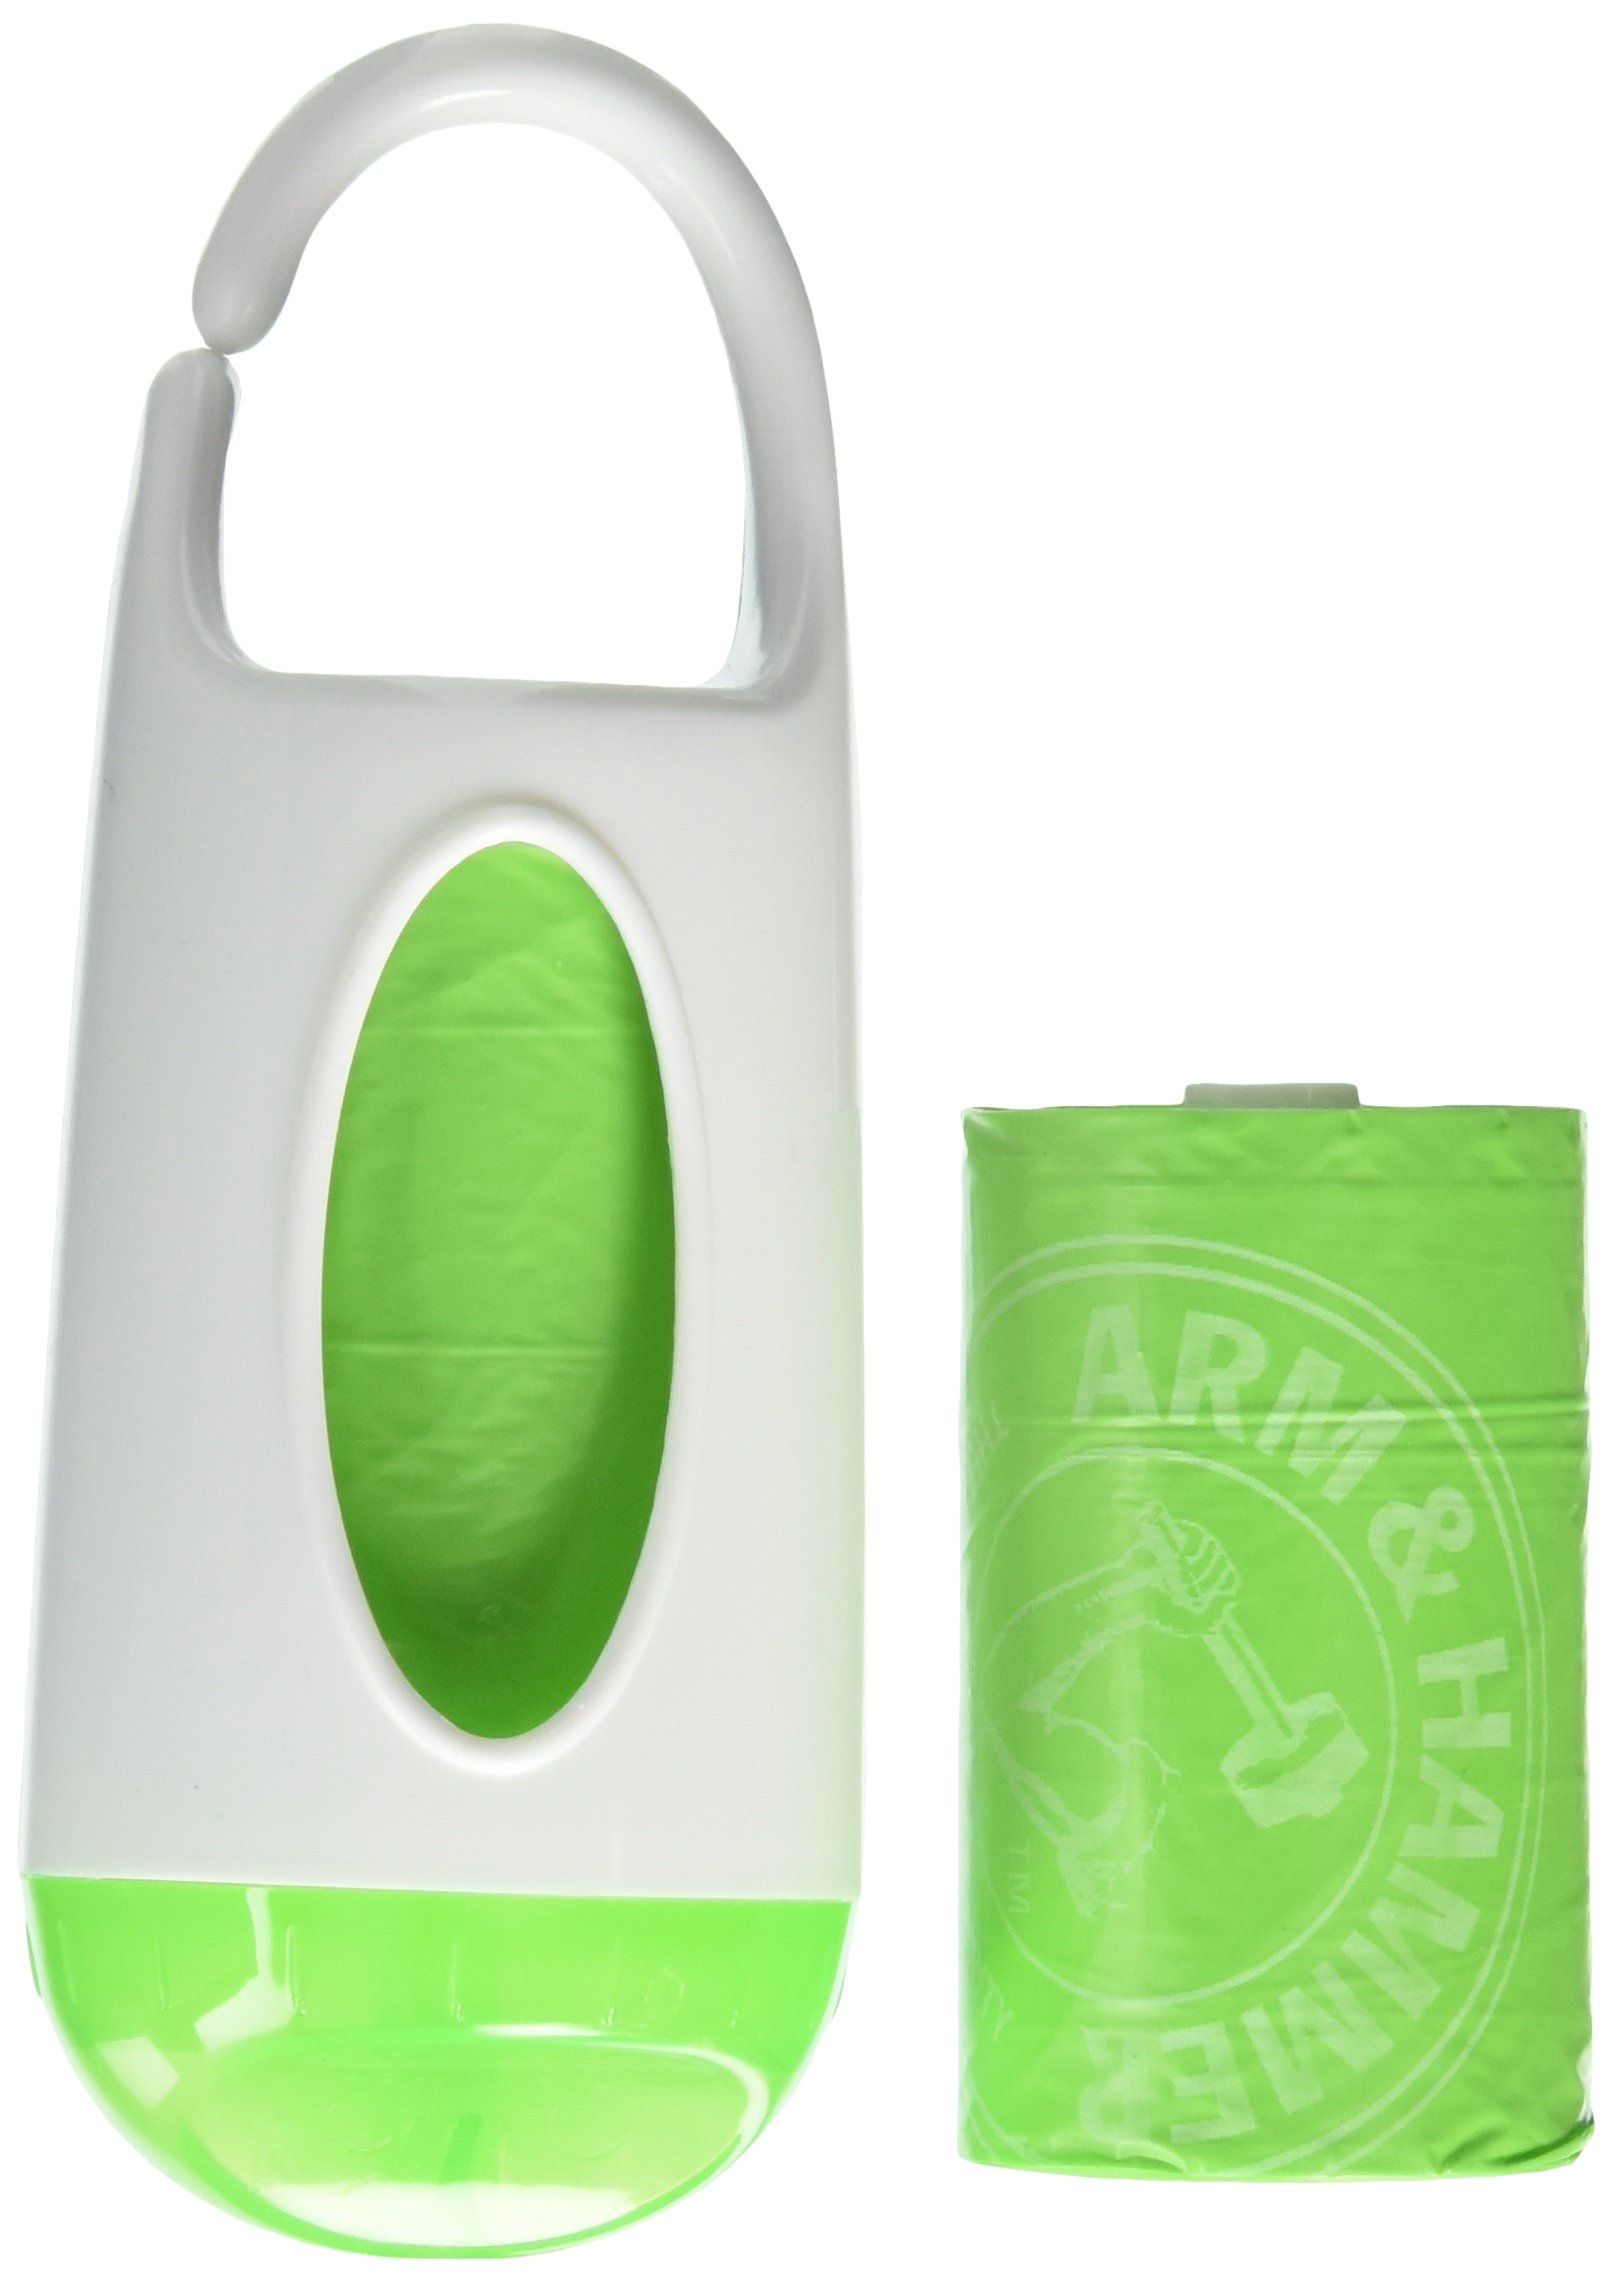 Munchkin Arm and Hammer Diaper Bag Dispenser, (colours may vary)